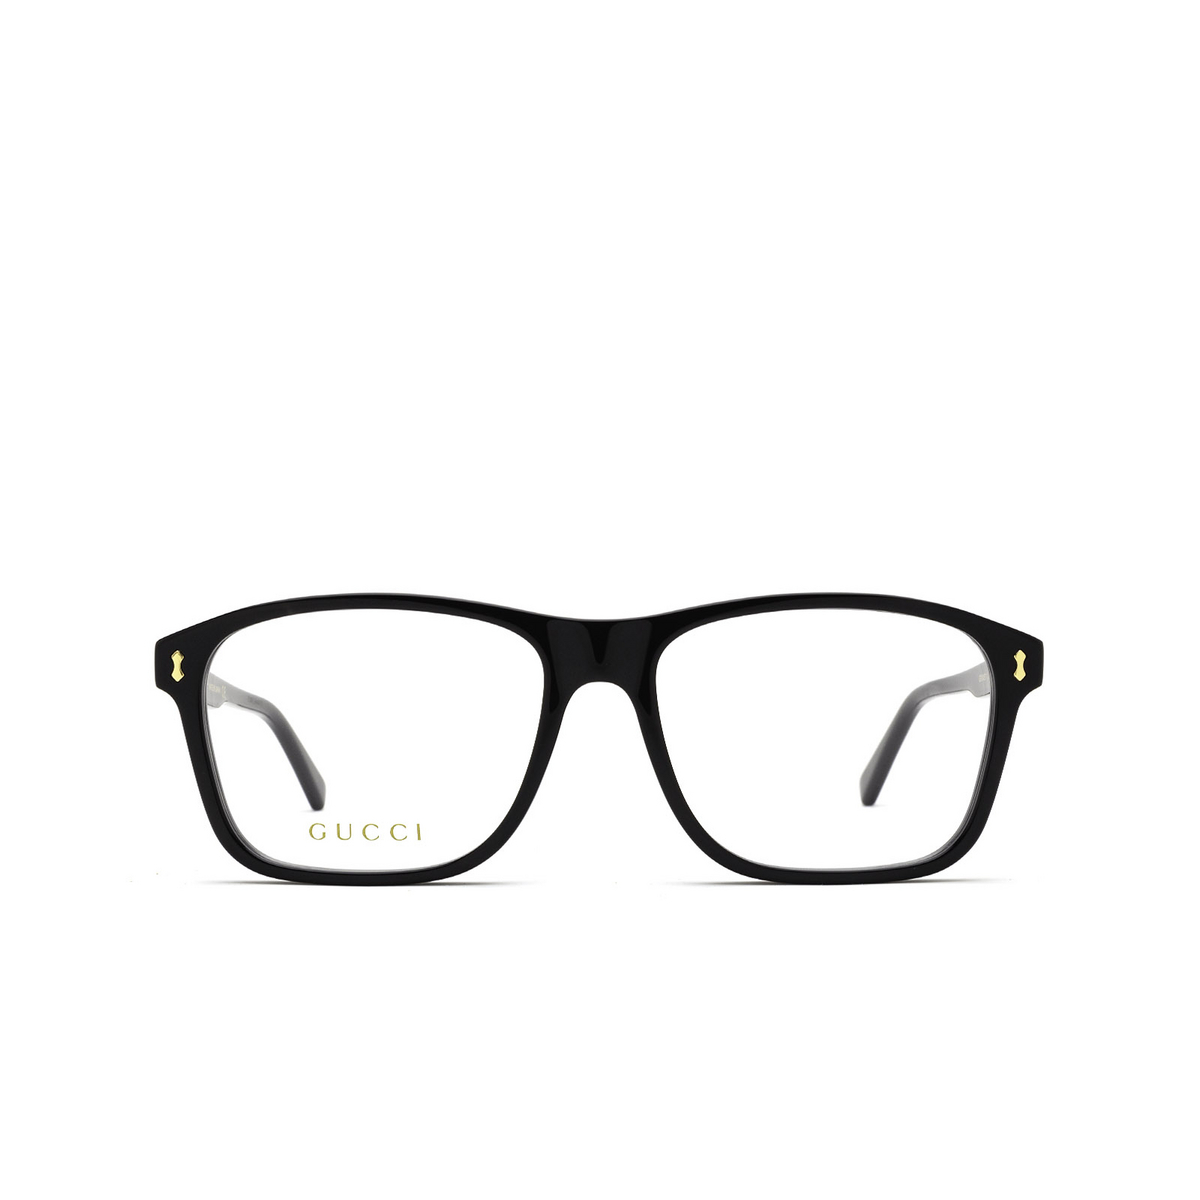 Gucci® Rectangle Eyeglasses: GG1045O color Black 001 - front view.